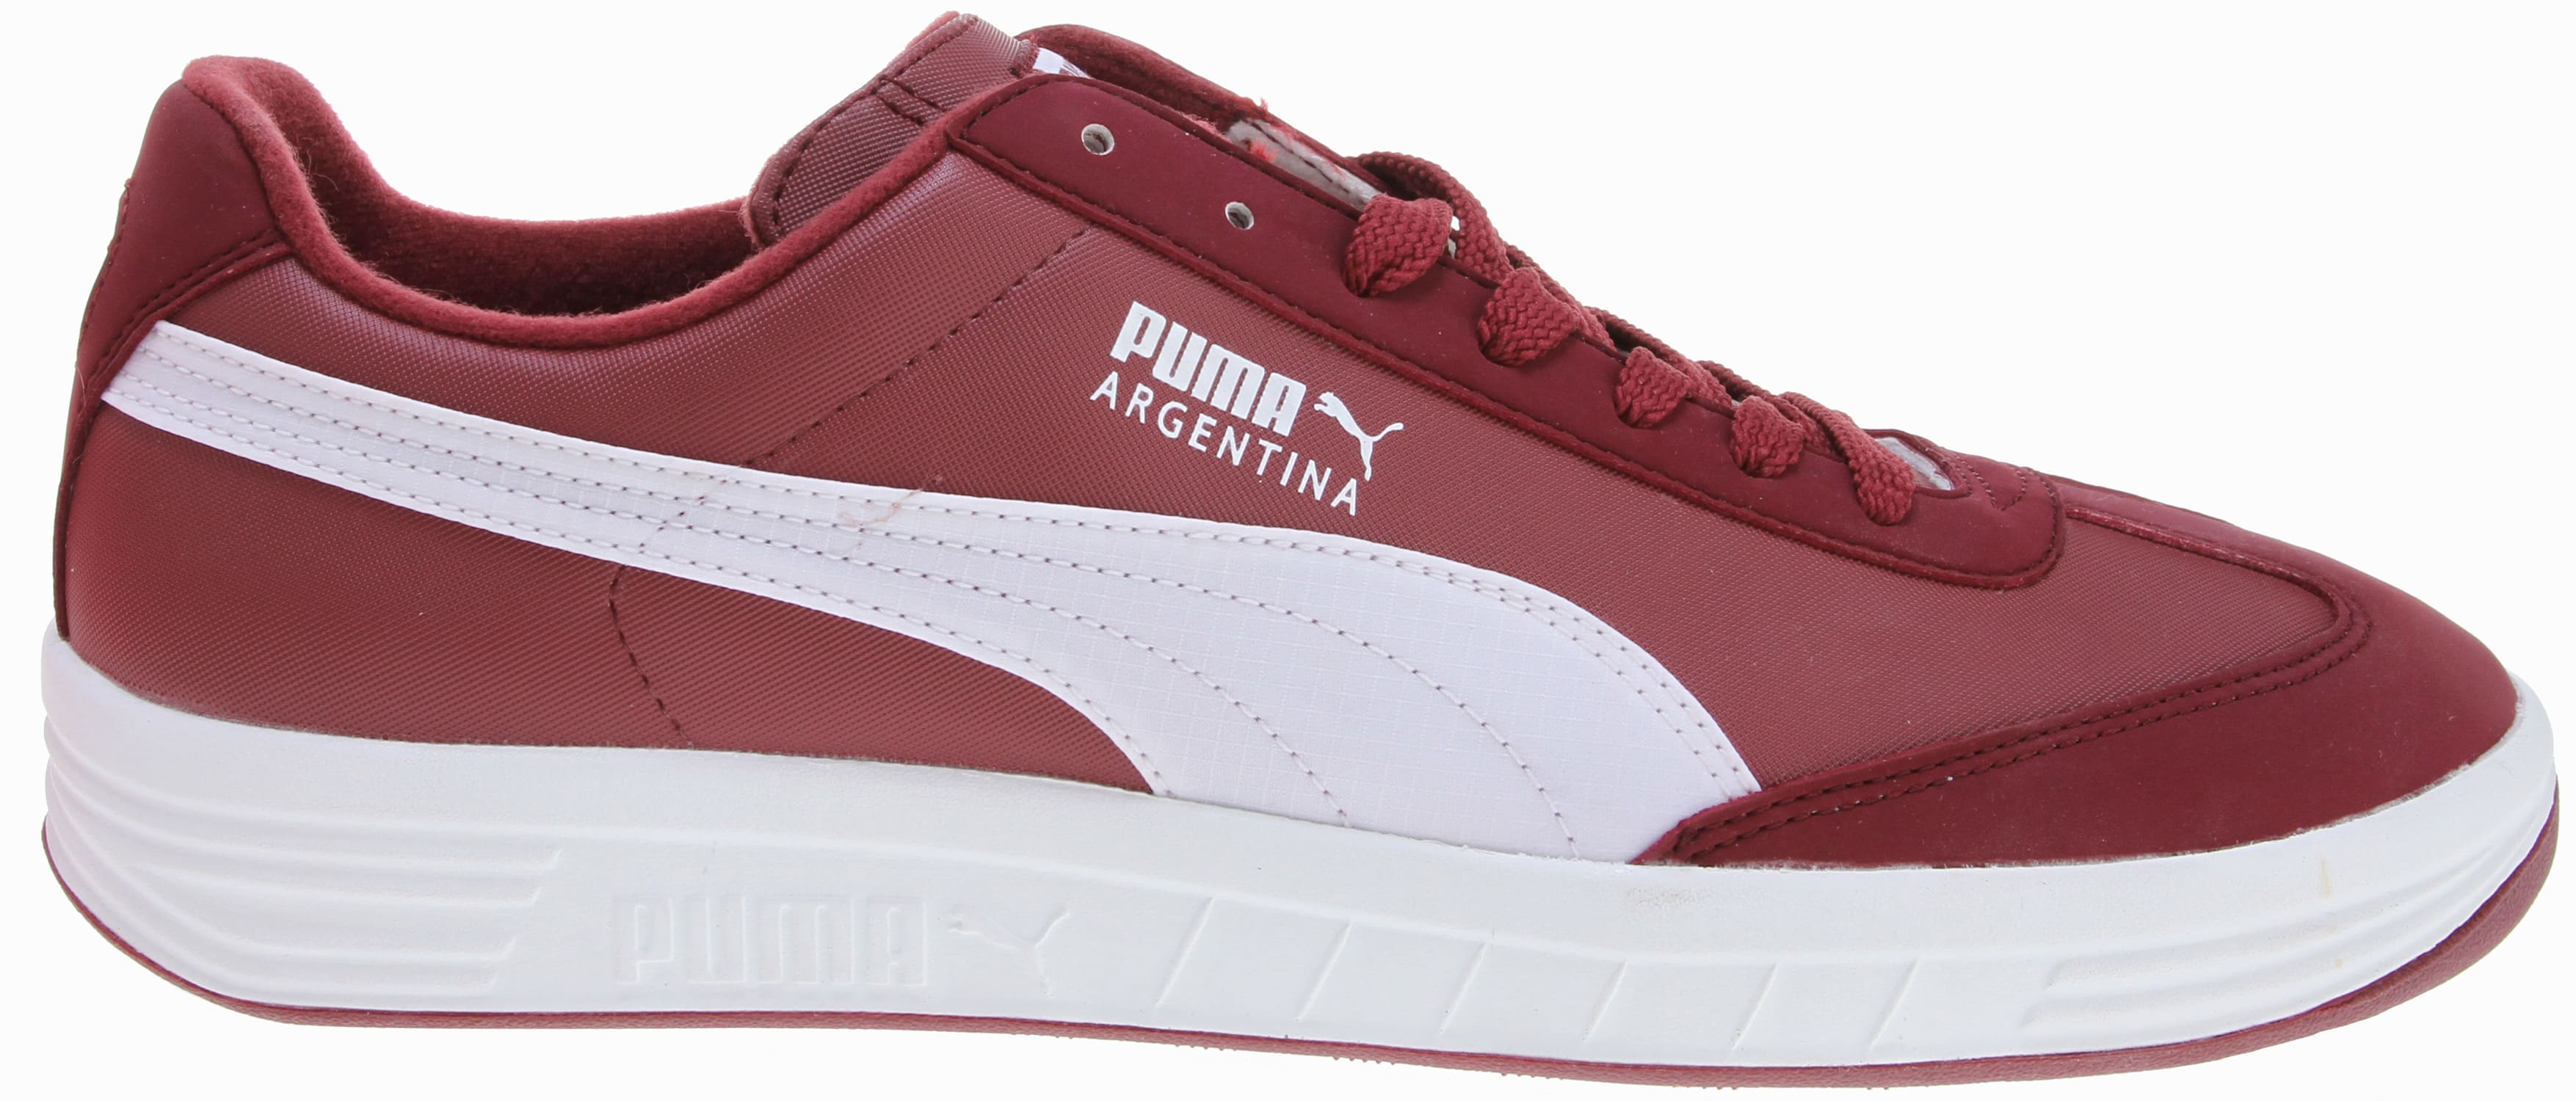 Puma Argentina Nbk Shoes - thumbnail 1 d0d461178